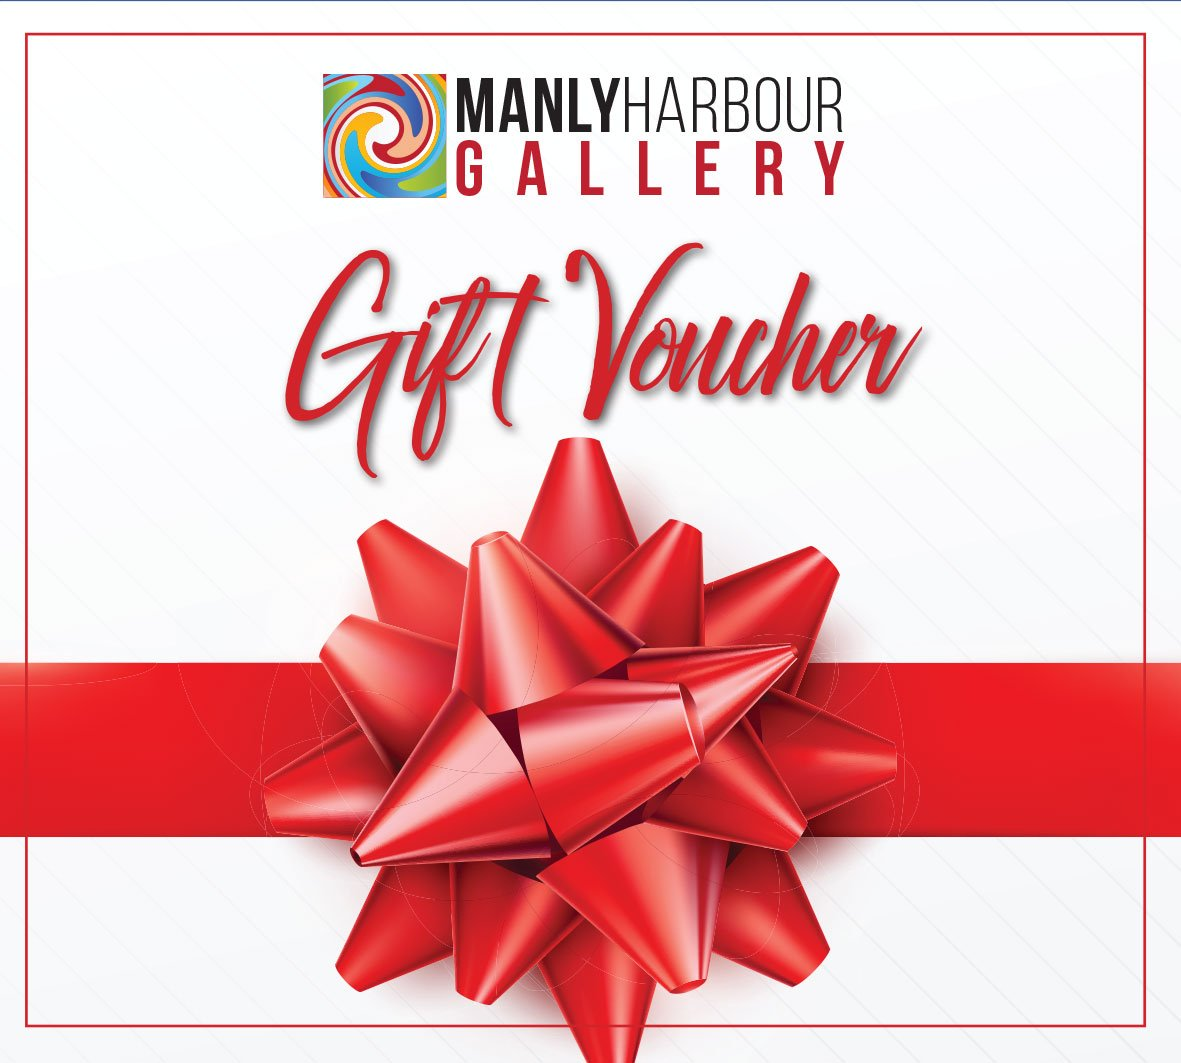 , Not Just an Art Gallery, Manly Harbour Gallery